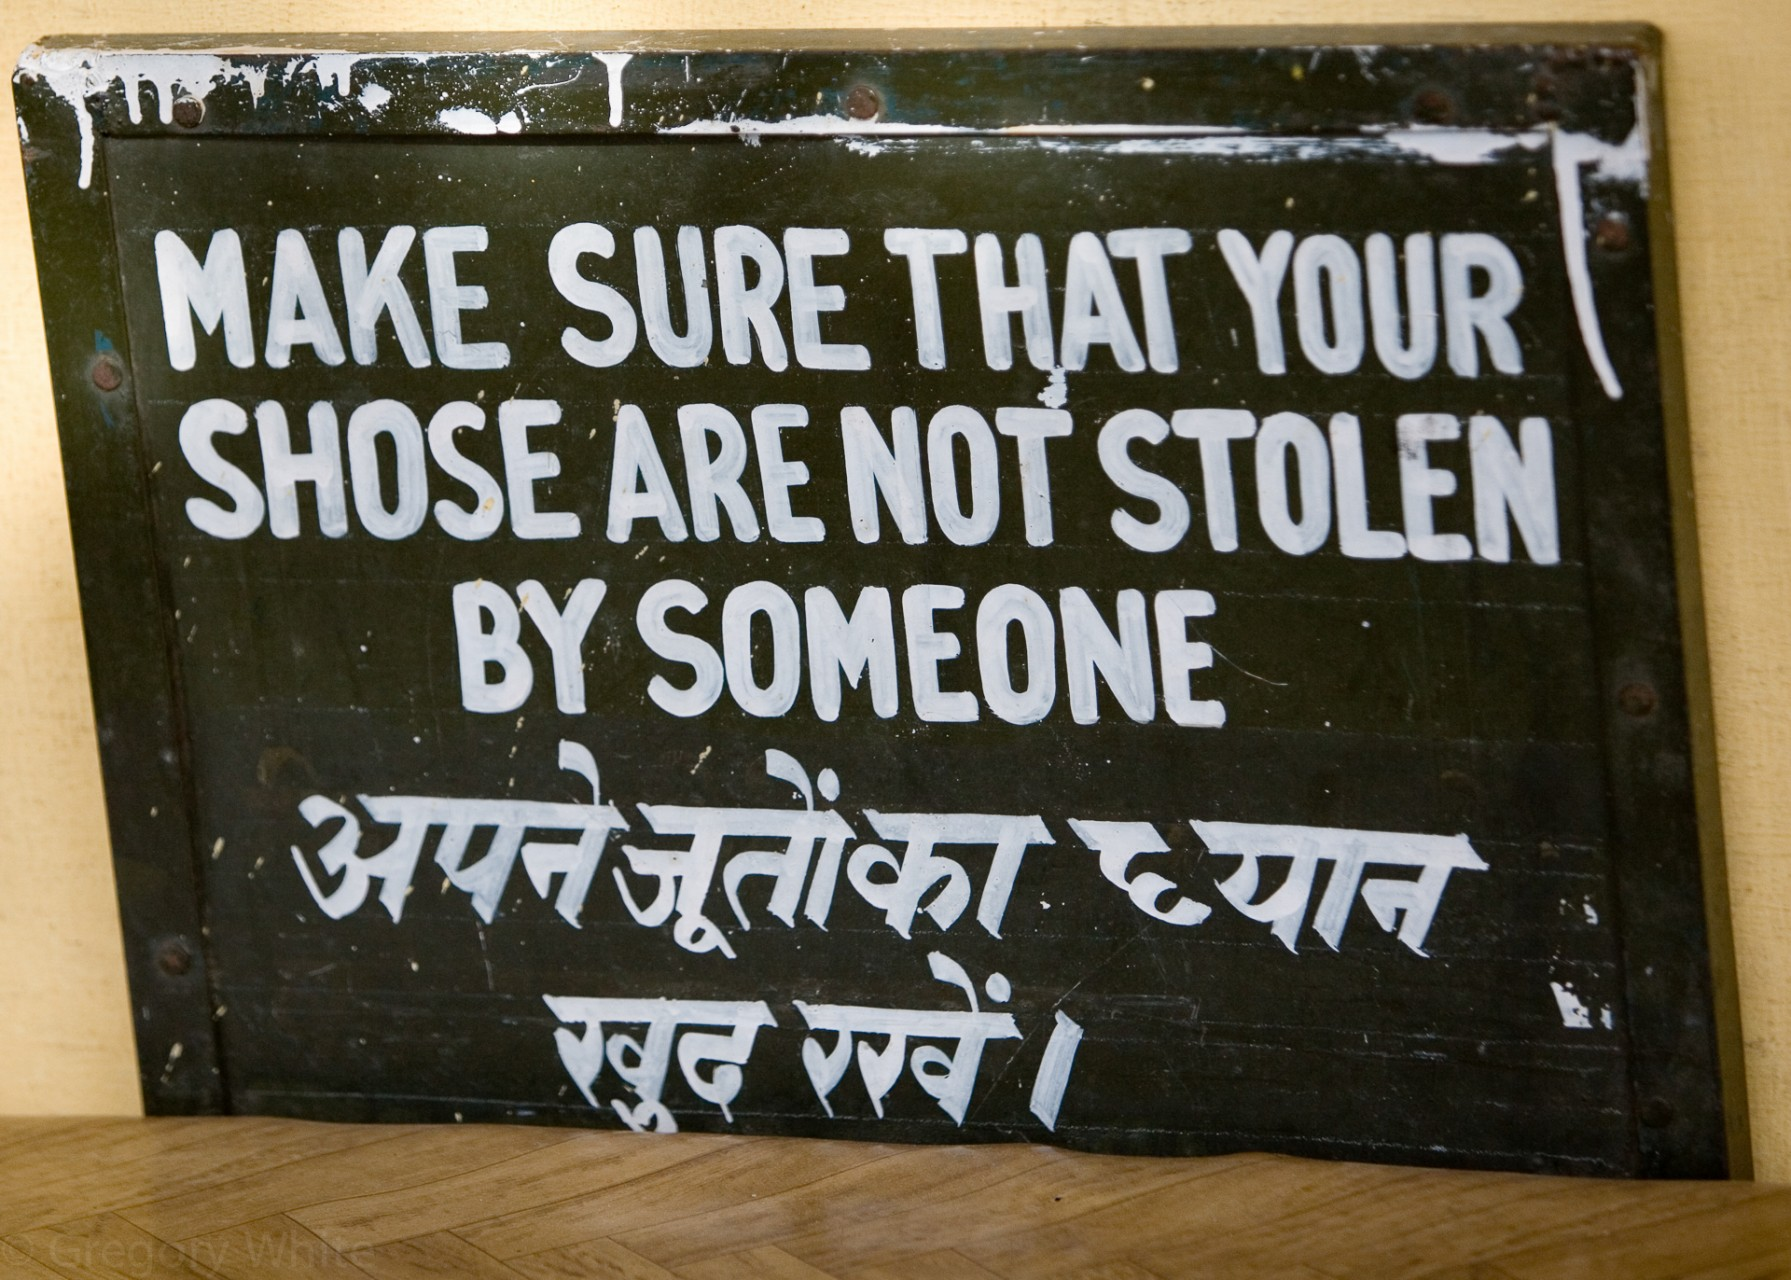 Make sure your shose are not stolen.